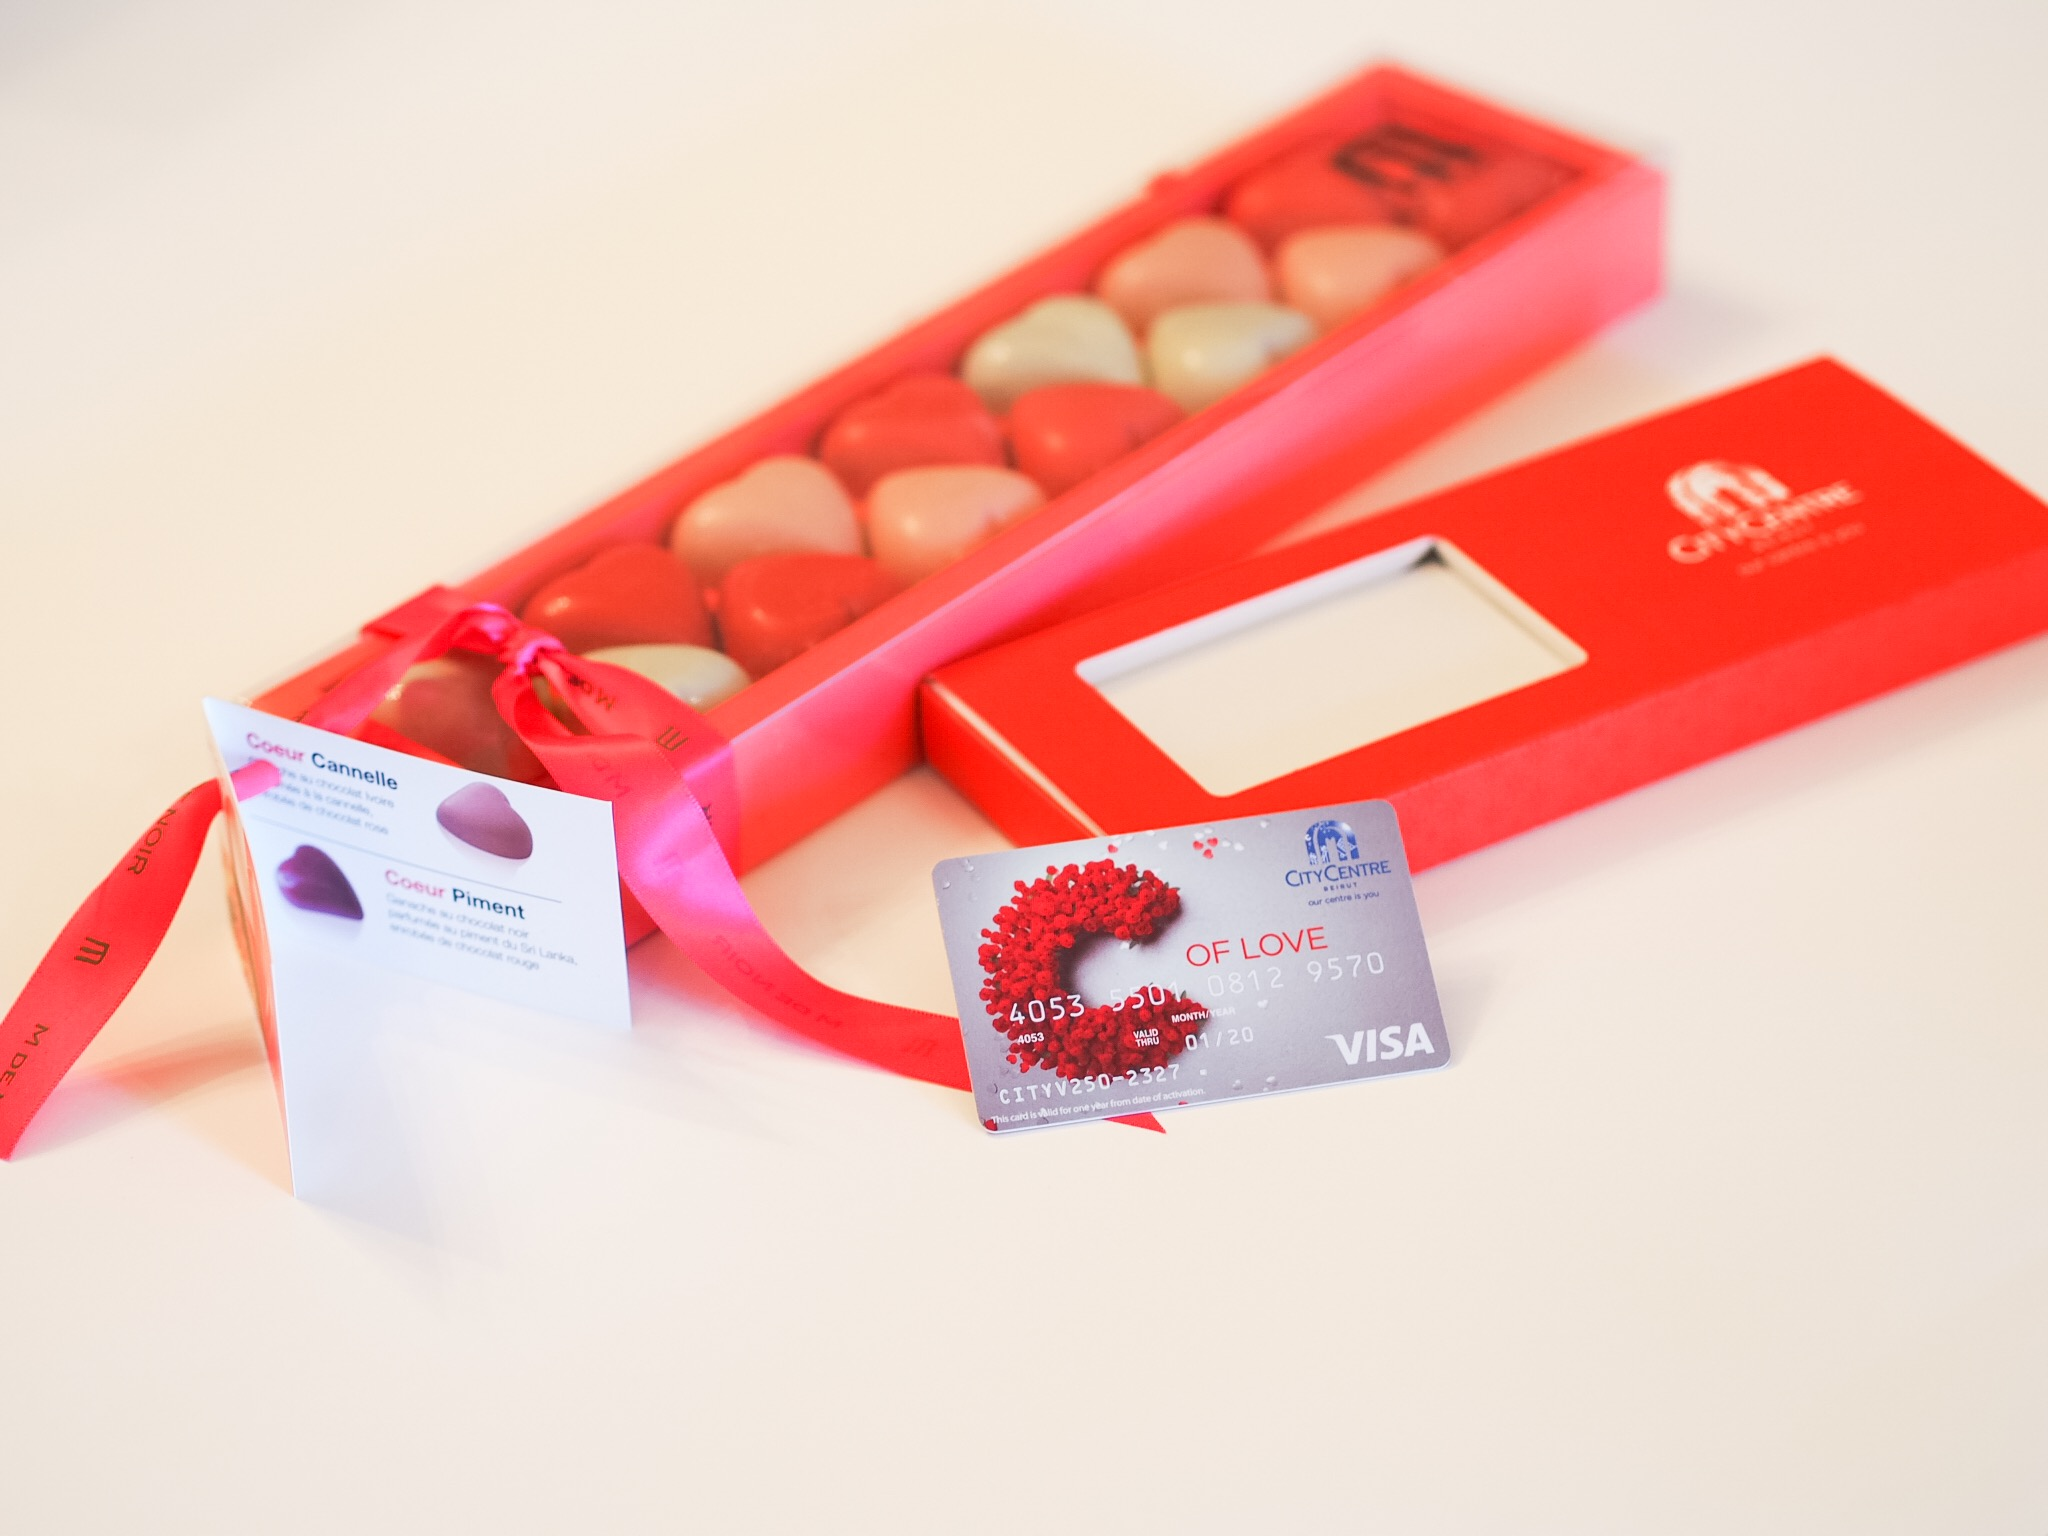 city centre gift card valentines day